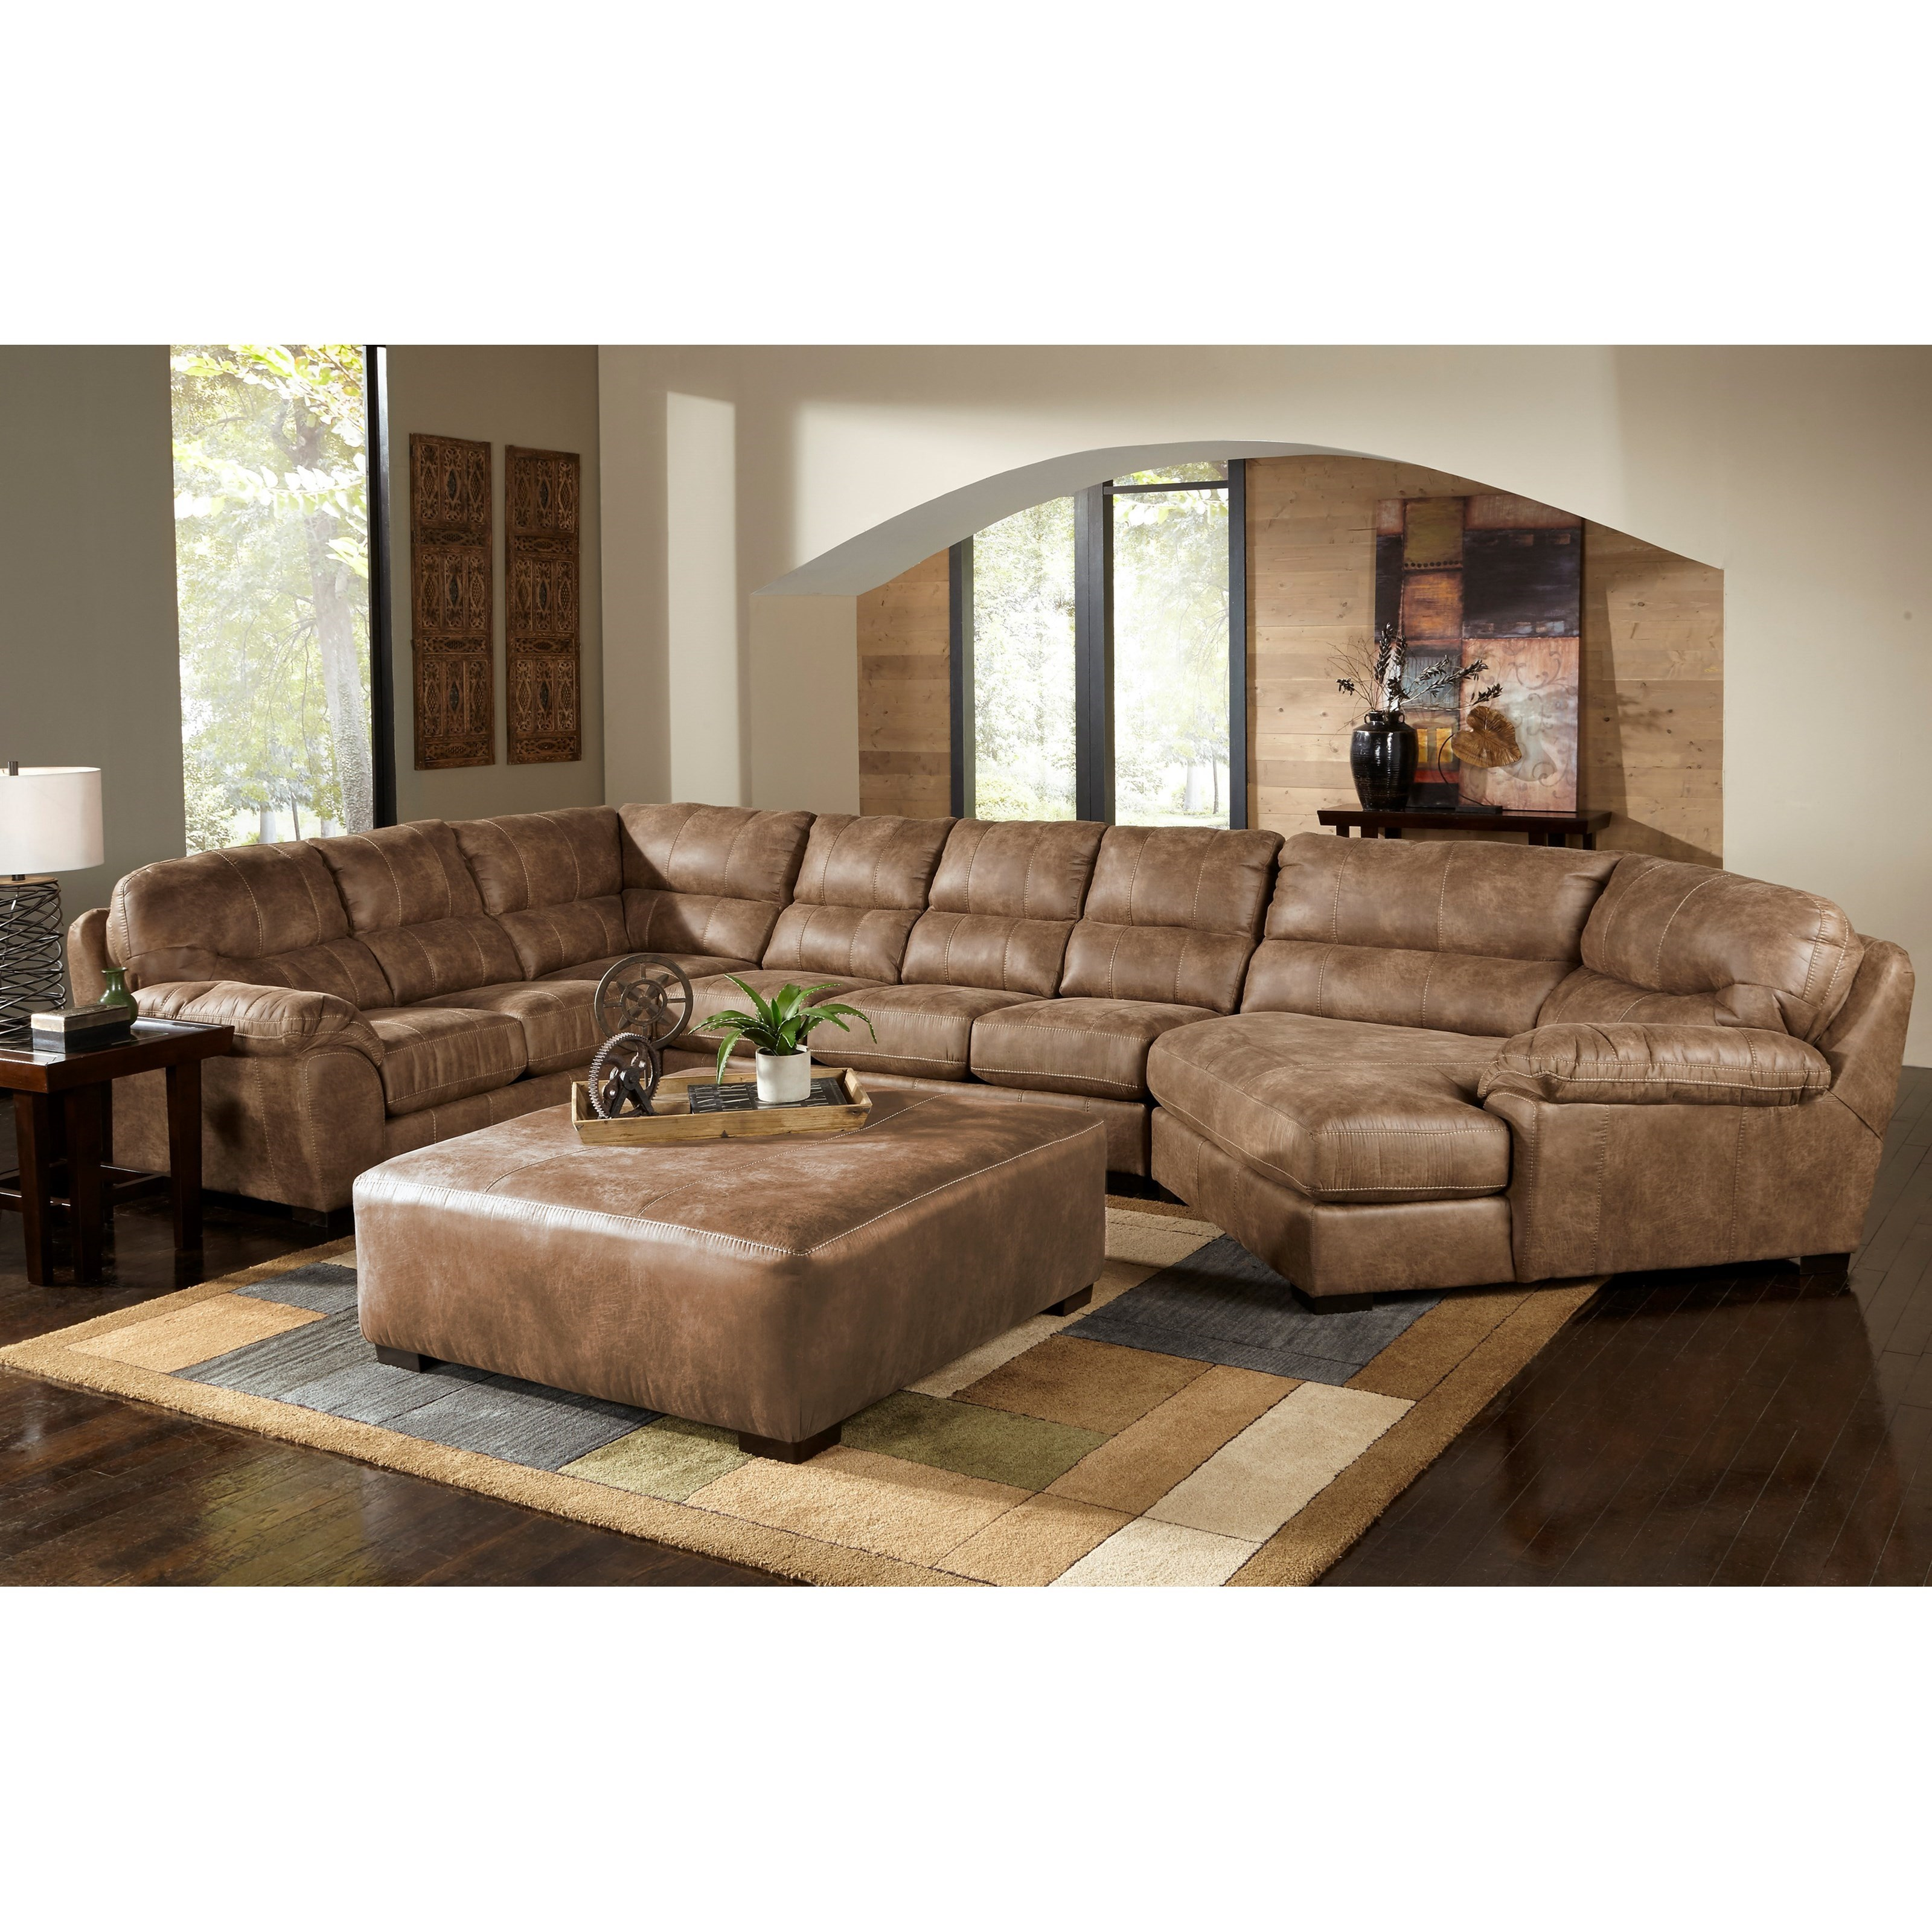 Jackson Furniture Gunsmoke Sectional Sofa EFO Furniture